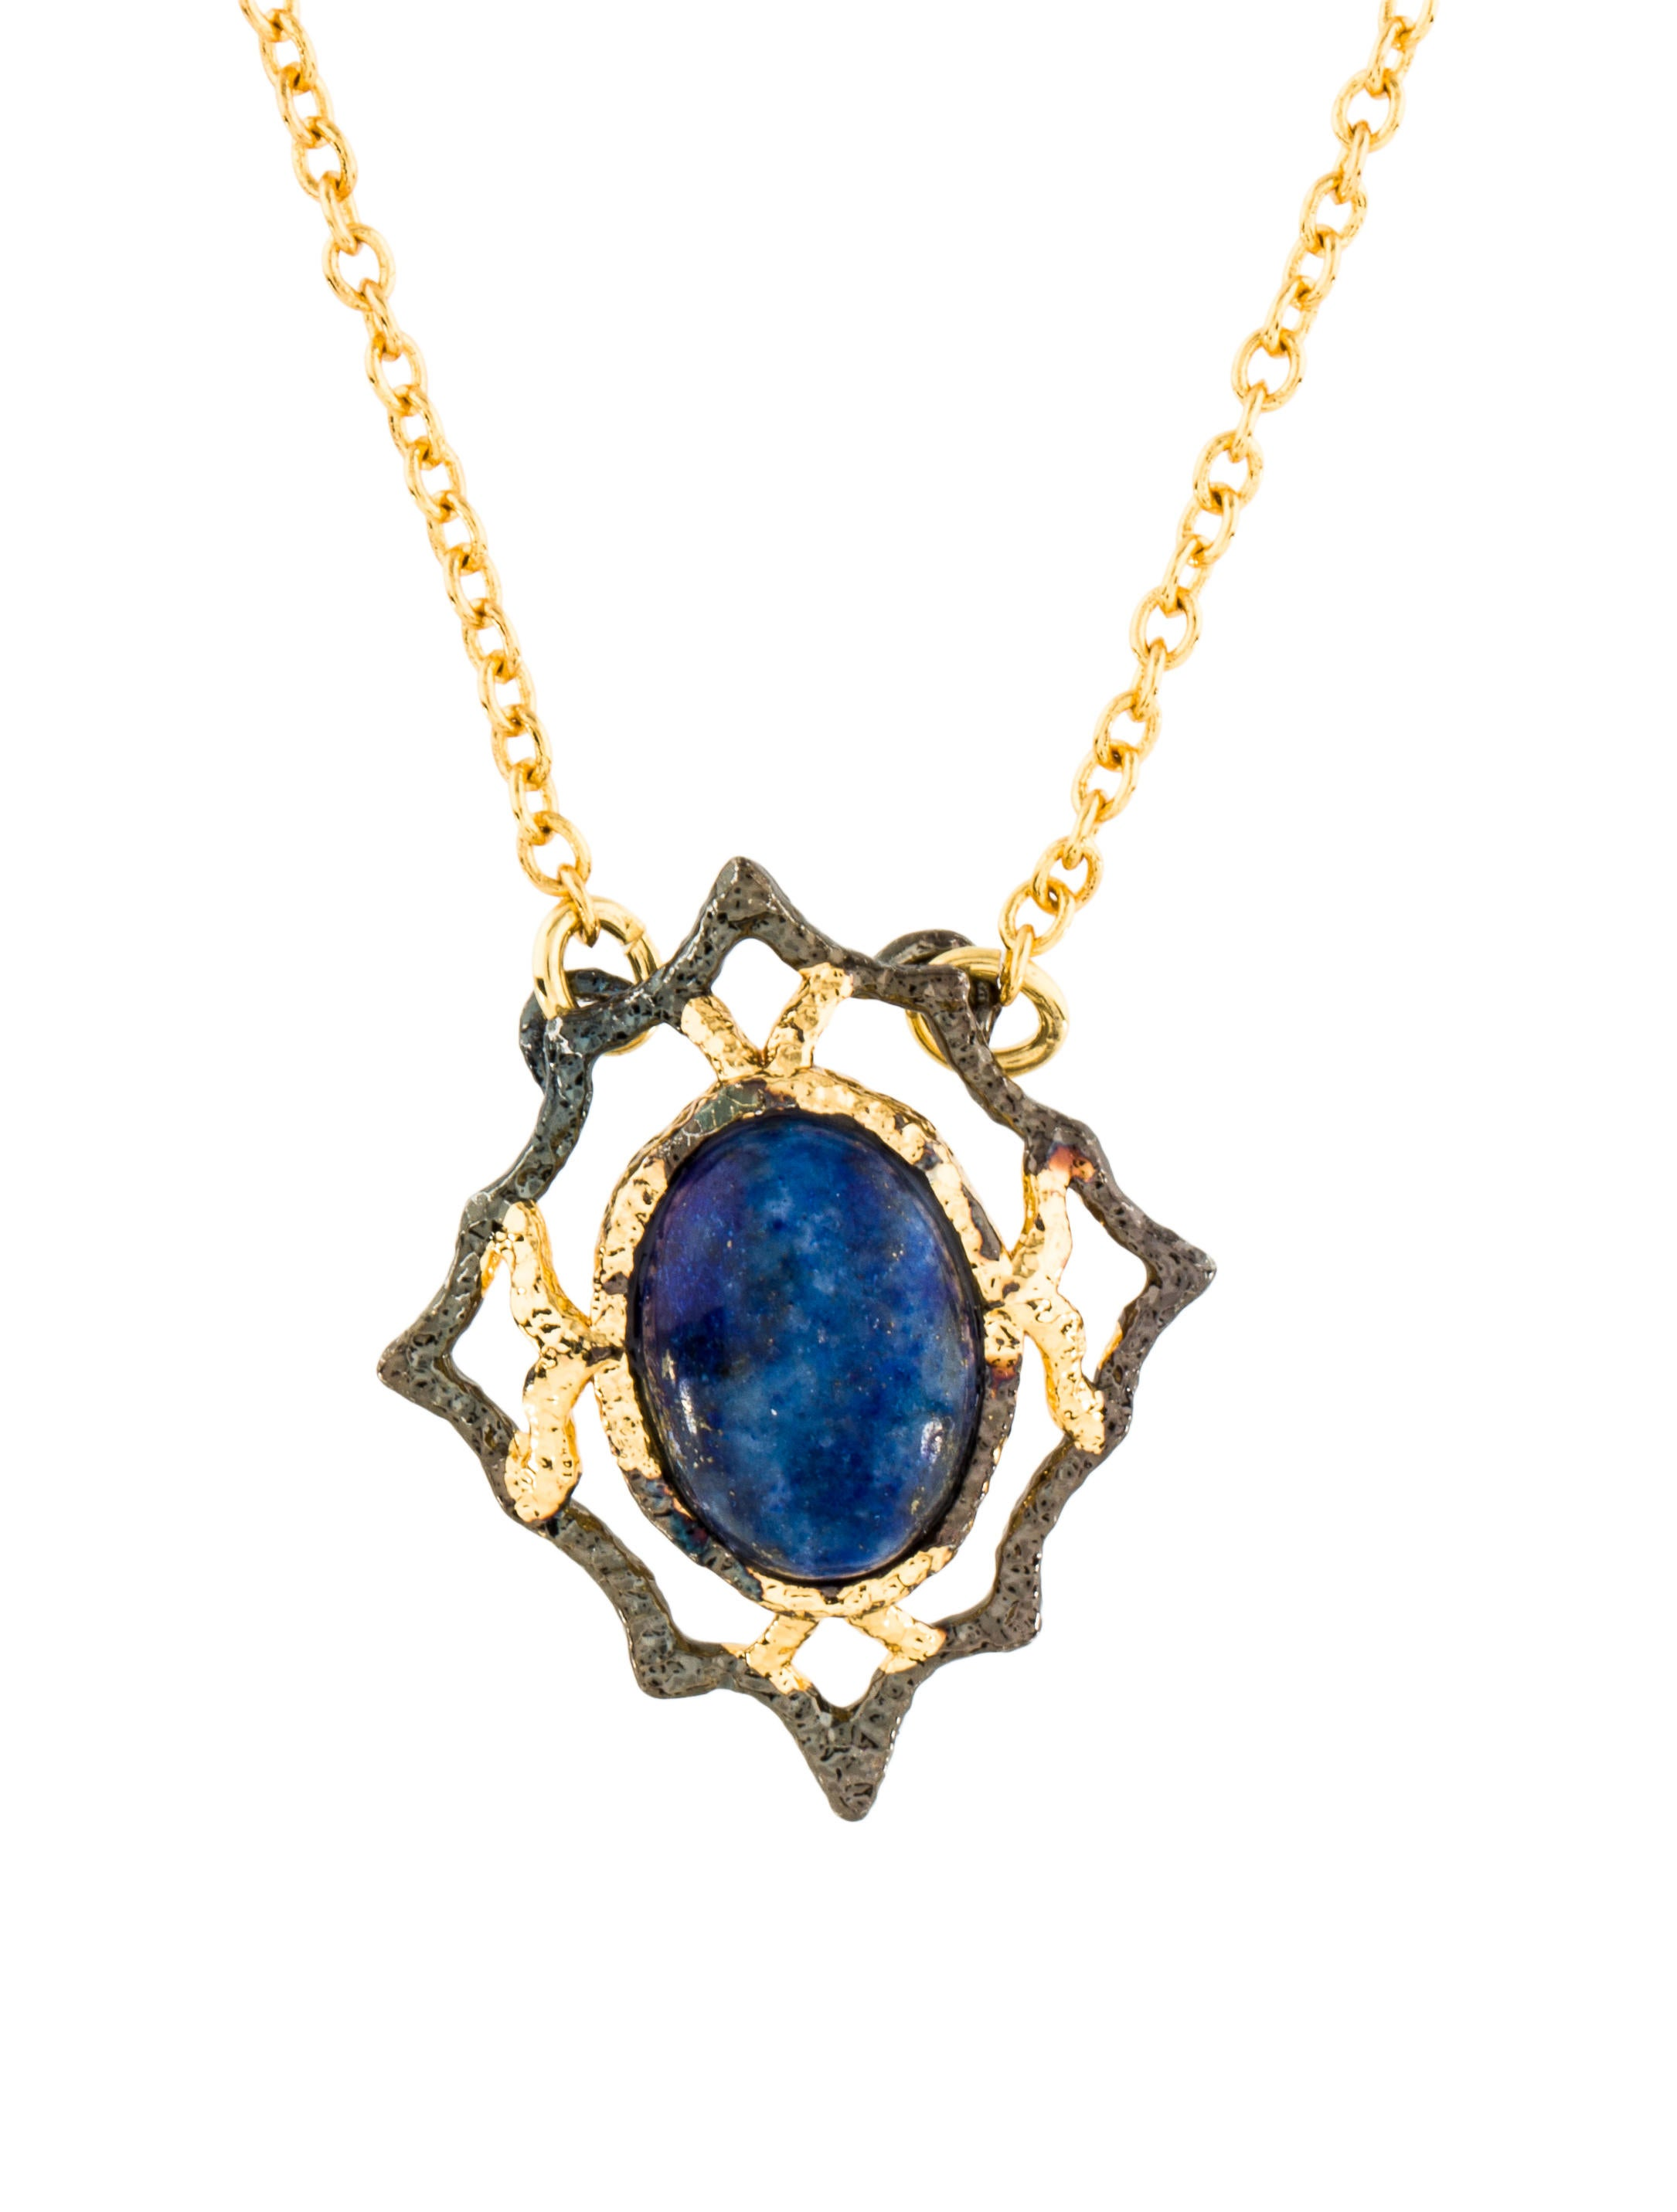 lapis necklace operandi pomellato lazuli moda large blue ritratto pendant by